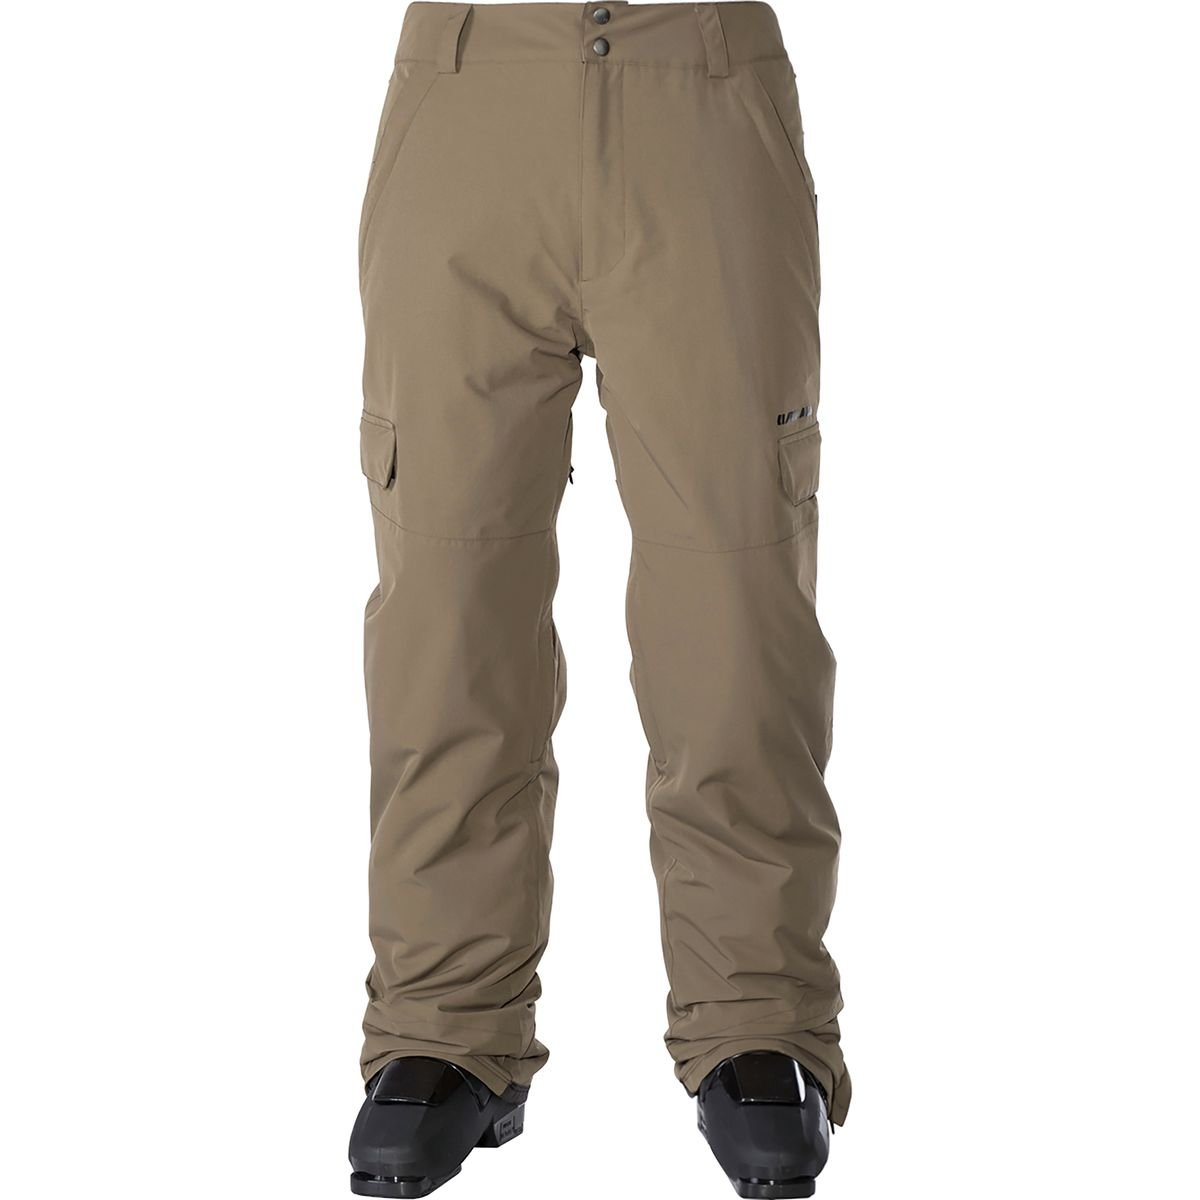 Armada Union Insulated Pant - Men's Burnt Olive, L